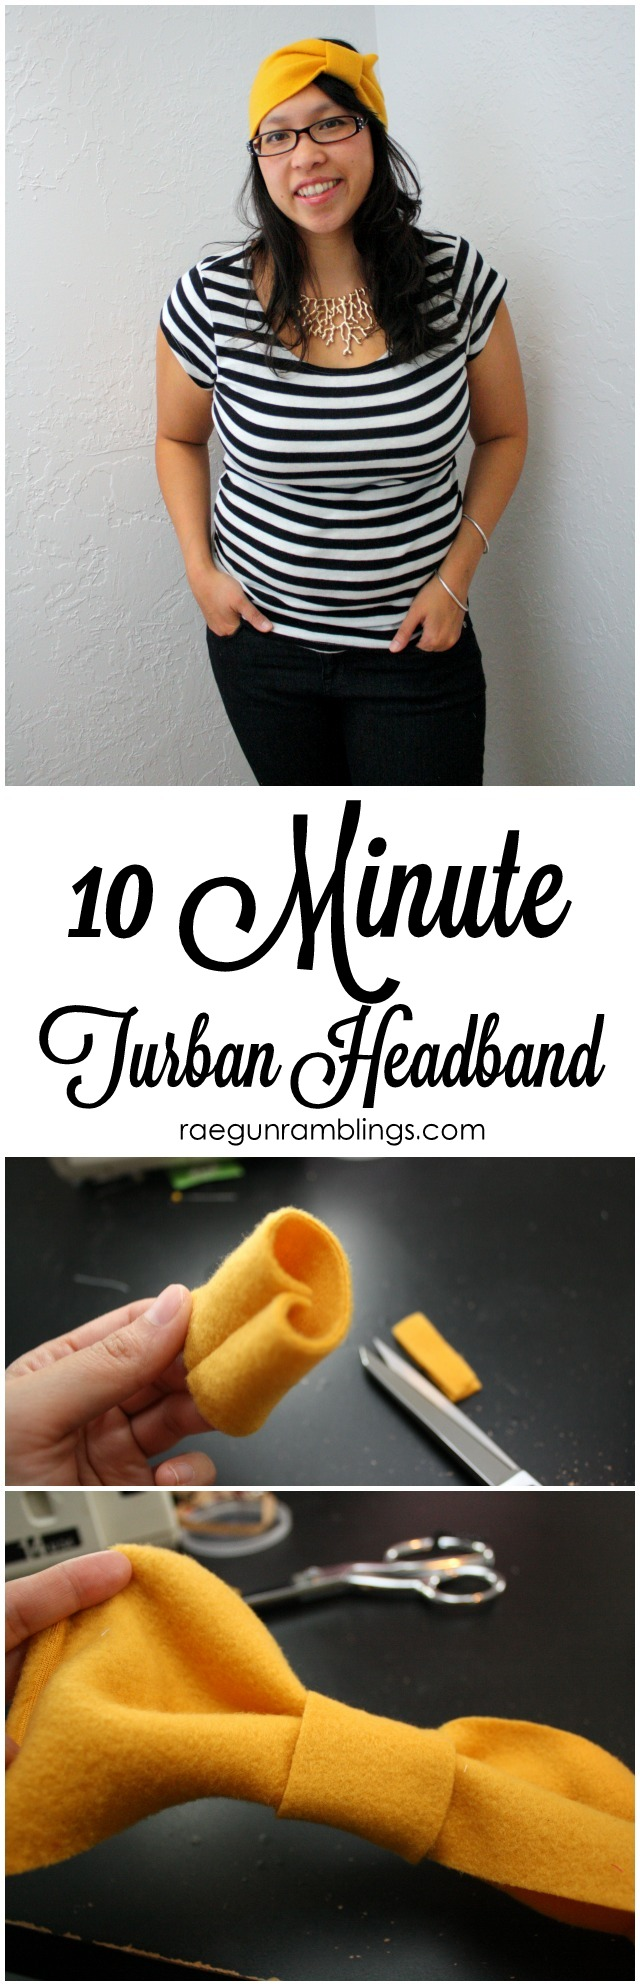 10 Minute Turban Style Headband with a darling big bow